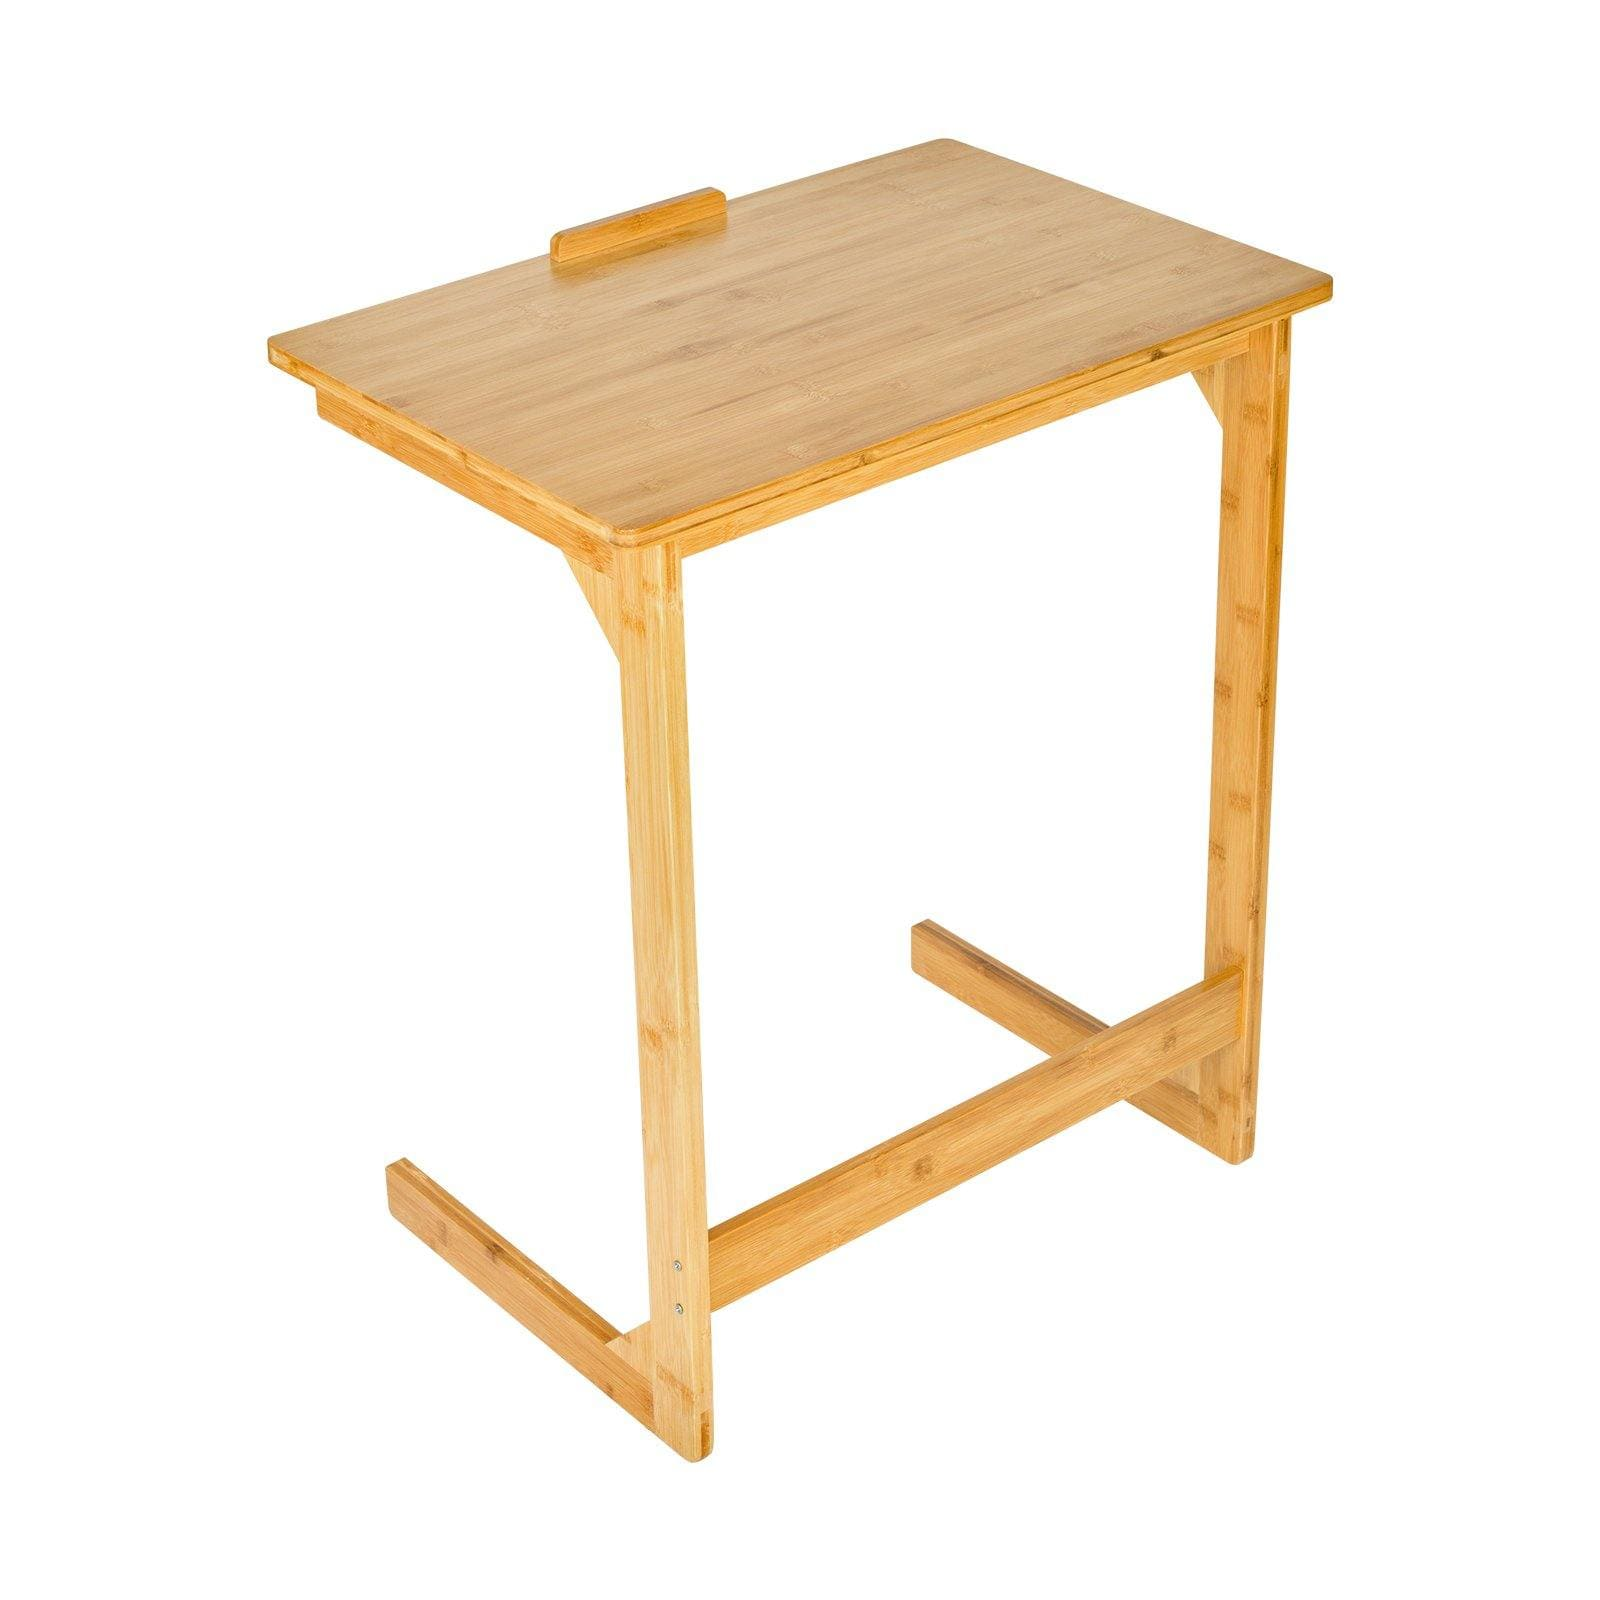 Bamboo Side Table - Elecwish